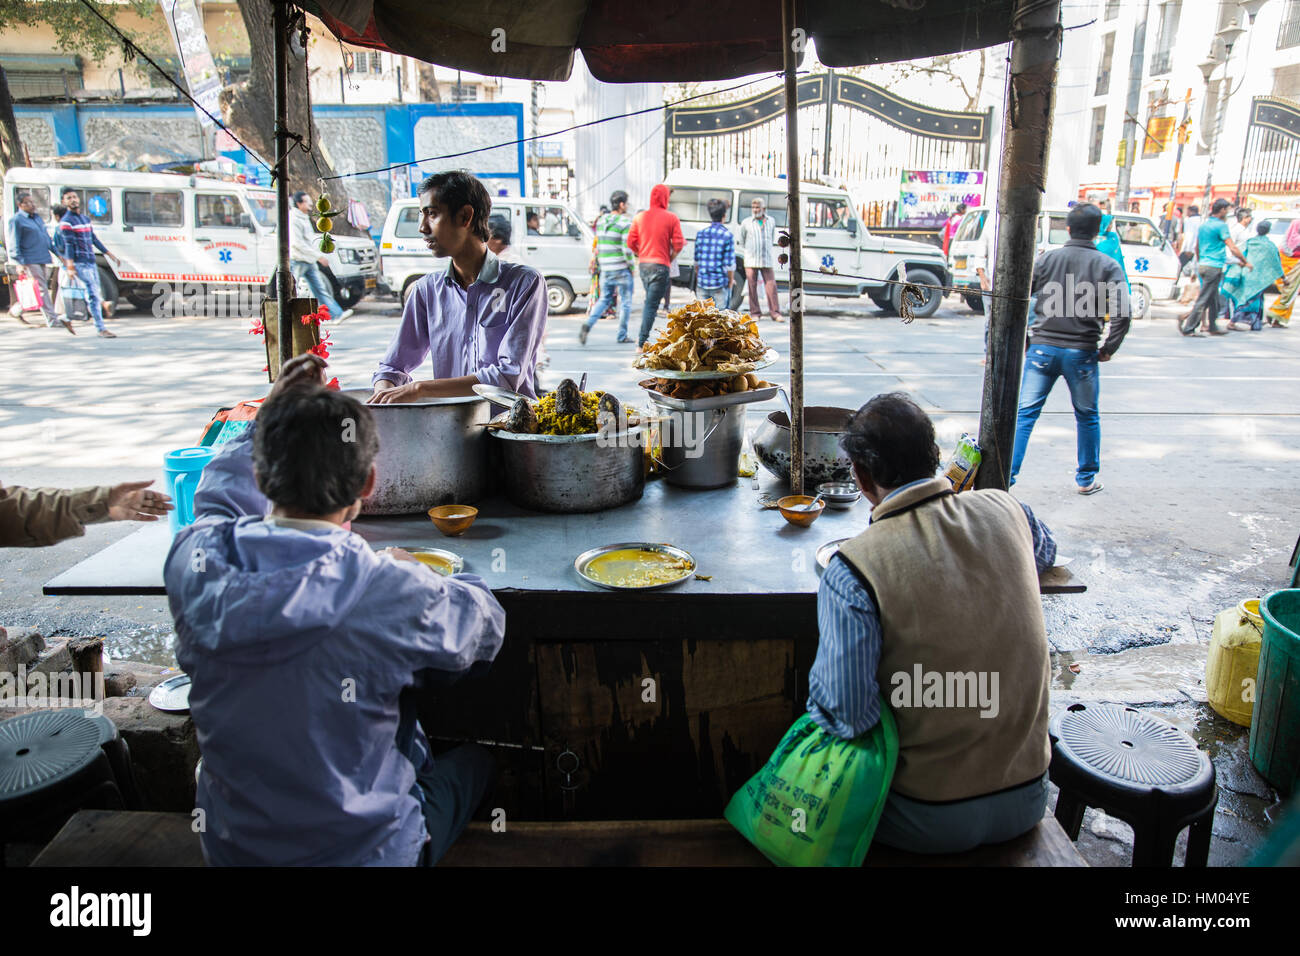 People eating lunch at a street food stall in Kolkata (Calcutta), West Bengal, India. - Stock Image